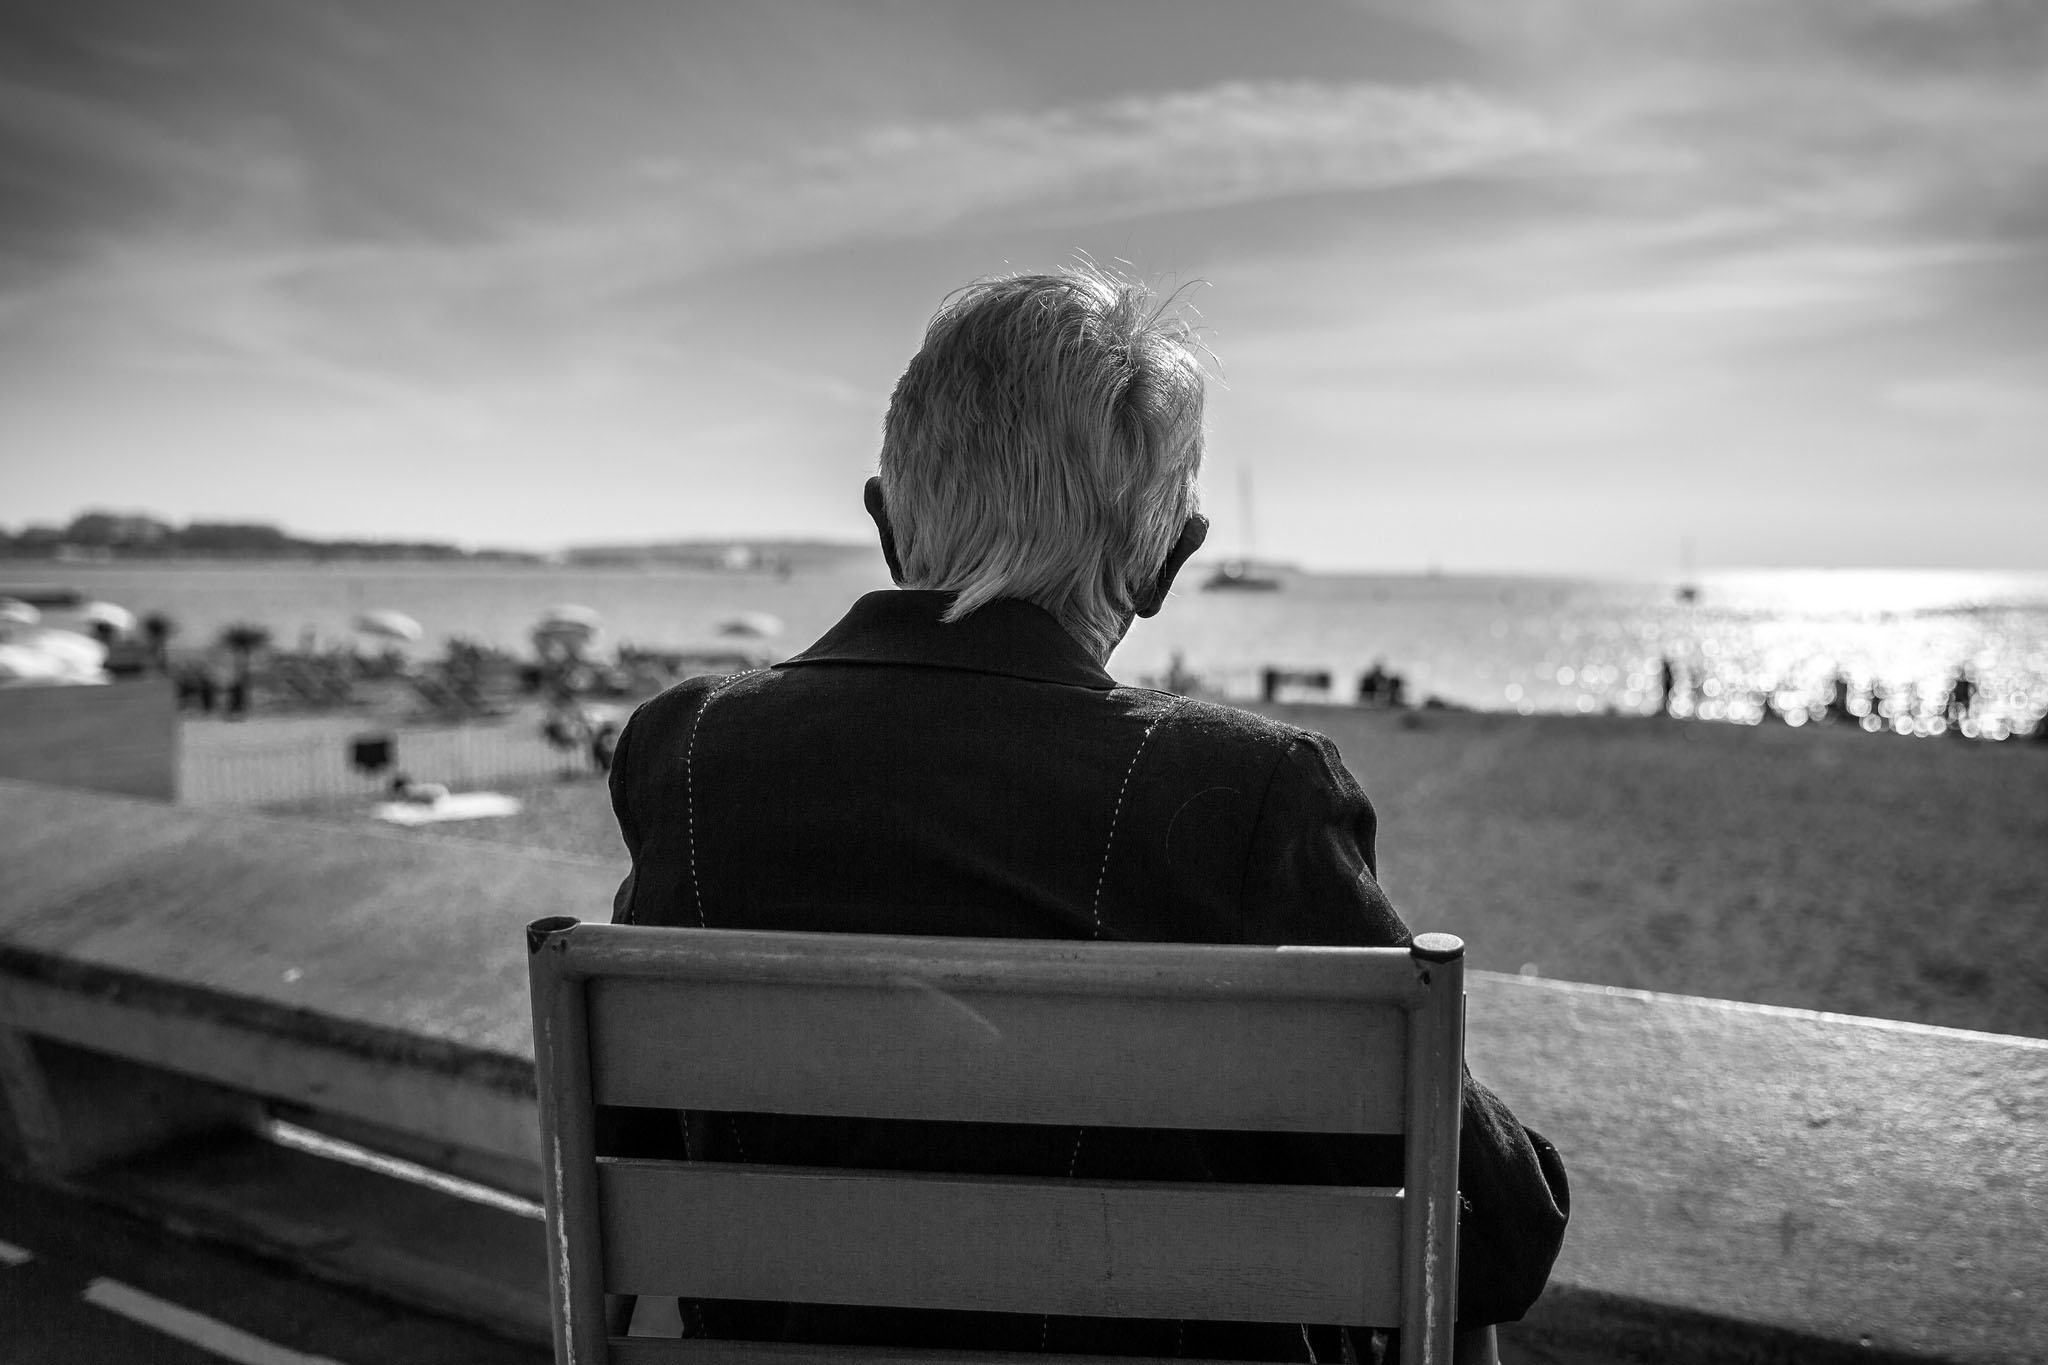 Loneliness has been linked to increased risk of type 2 diabetes, dementia, and heart issues. (Franck Michel, Flickr)